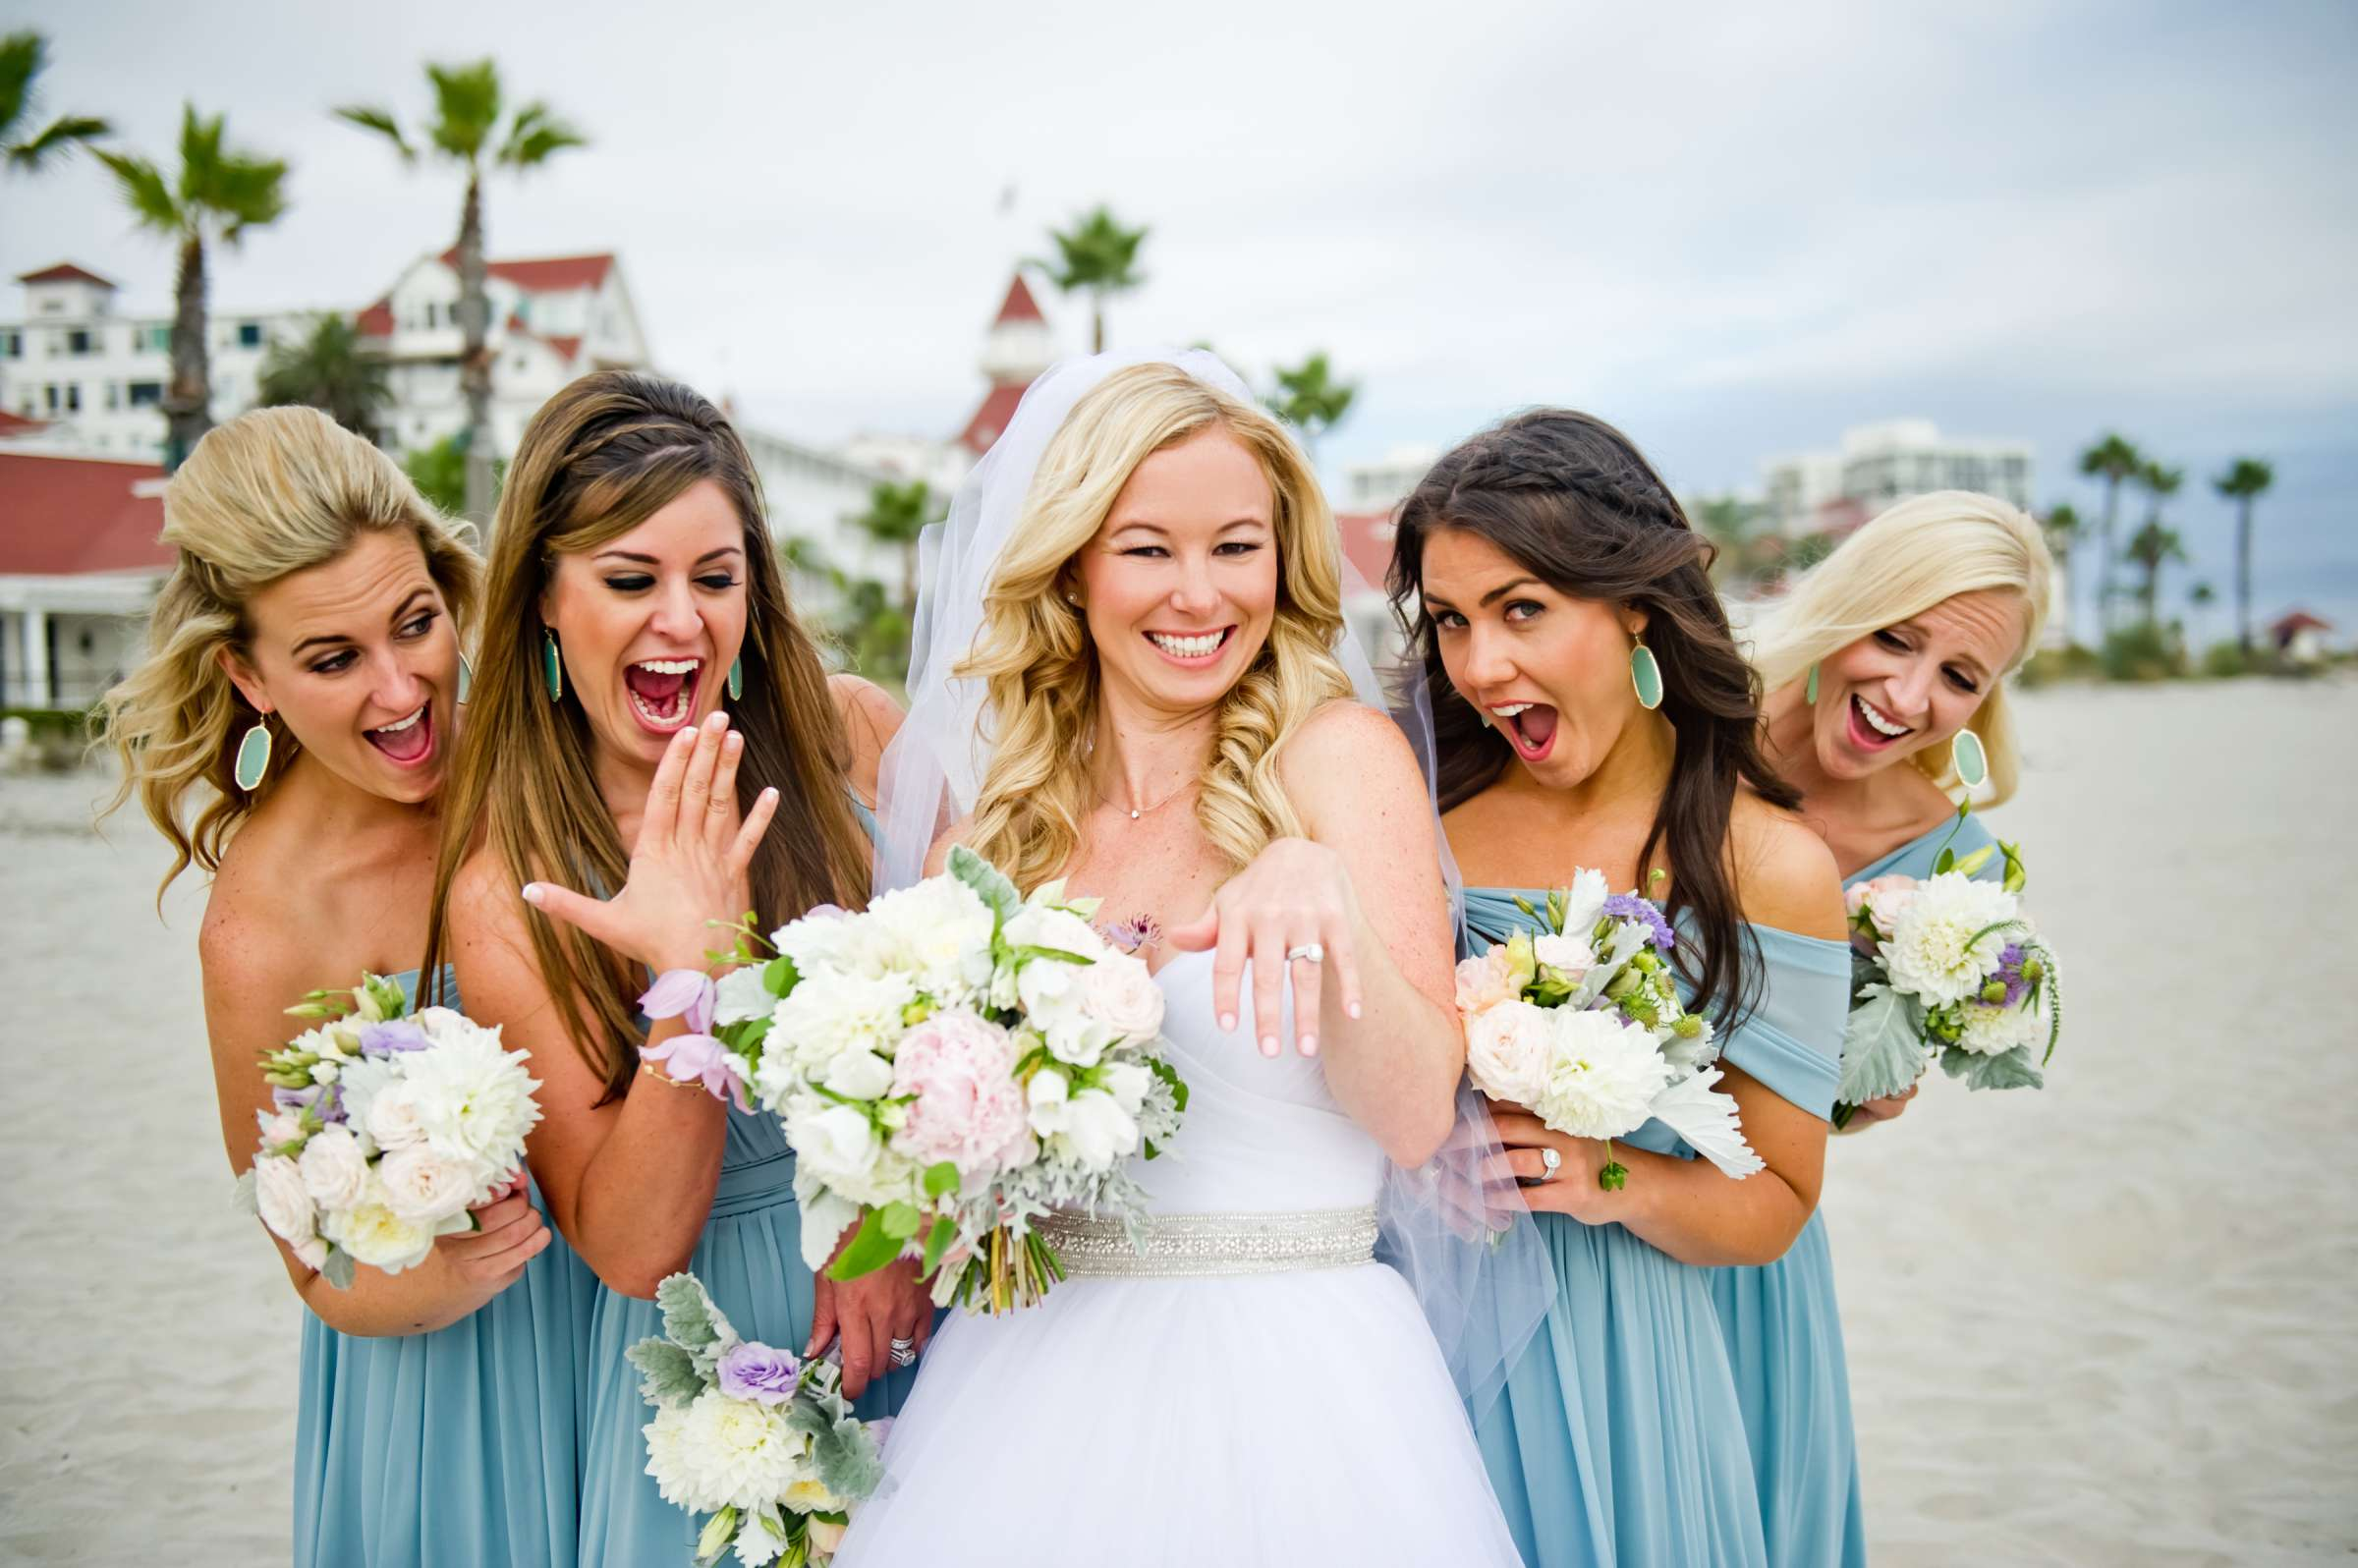 Coronado Cays Yacht Club Wedding coordinated by Creative Affairs Inc, Katie and Gene Wedding Photo #124975 by True Photography